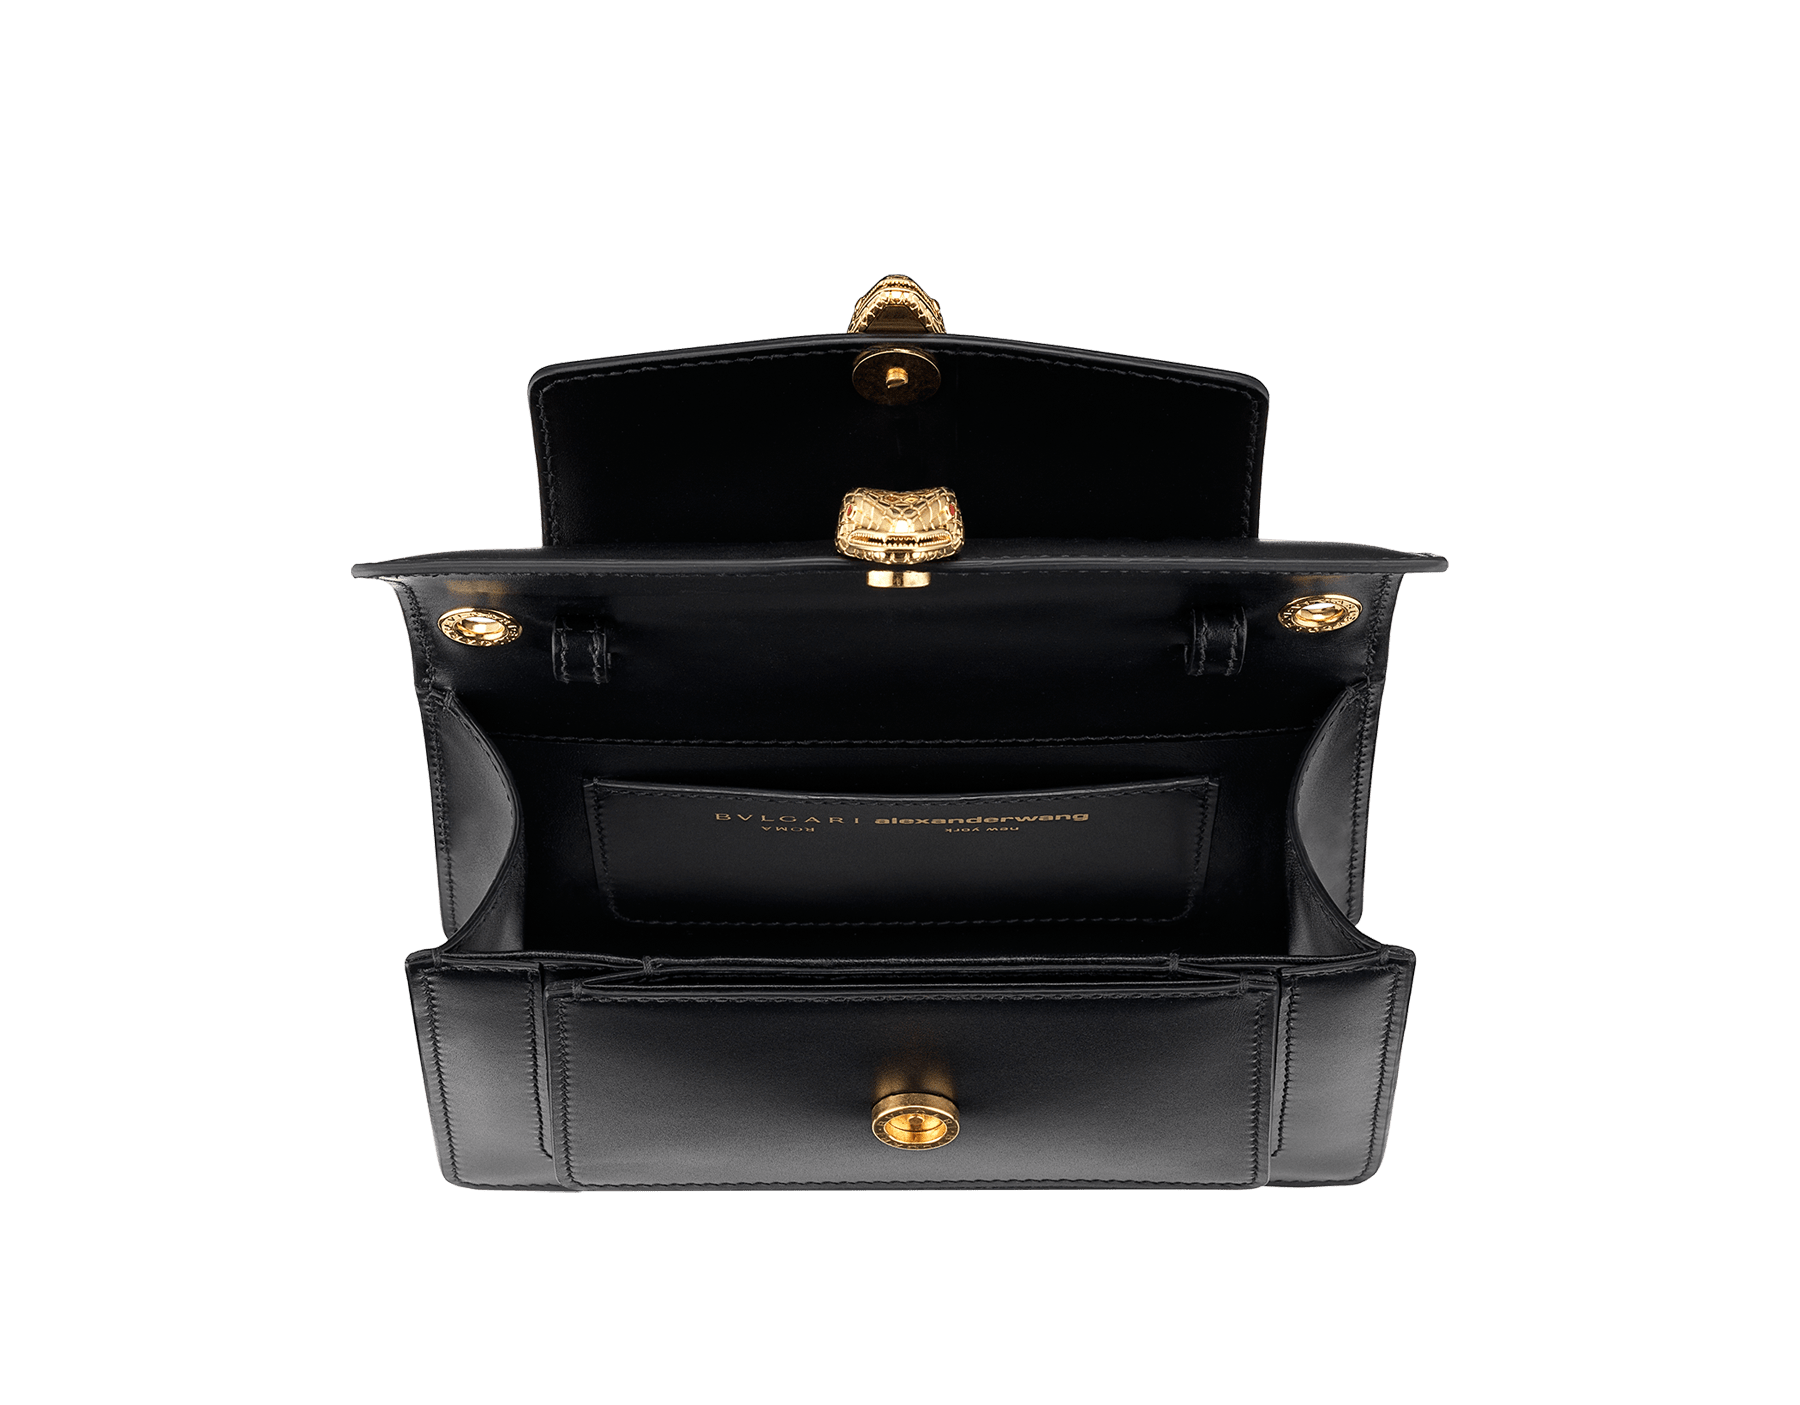 """Alexander Wang x Bvlgari"" belt bag in smooth peach calf leather. New double Serpenti head closure in antique gold plated brass with tempting red enamel eyes. Limited edition. SFW-001-1029S image 7"